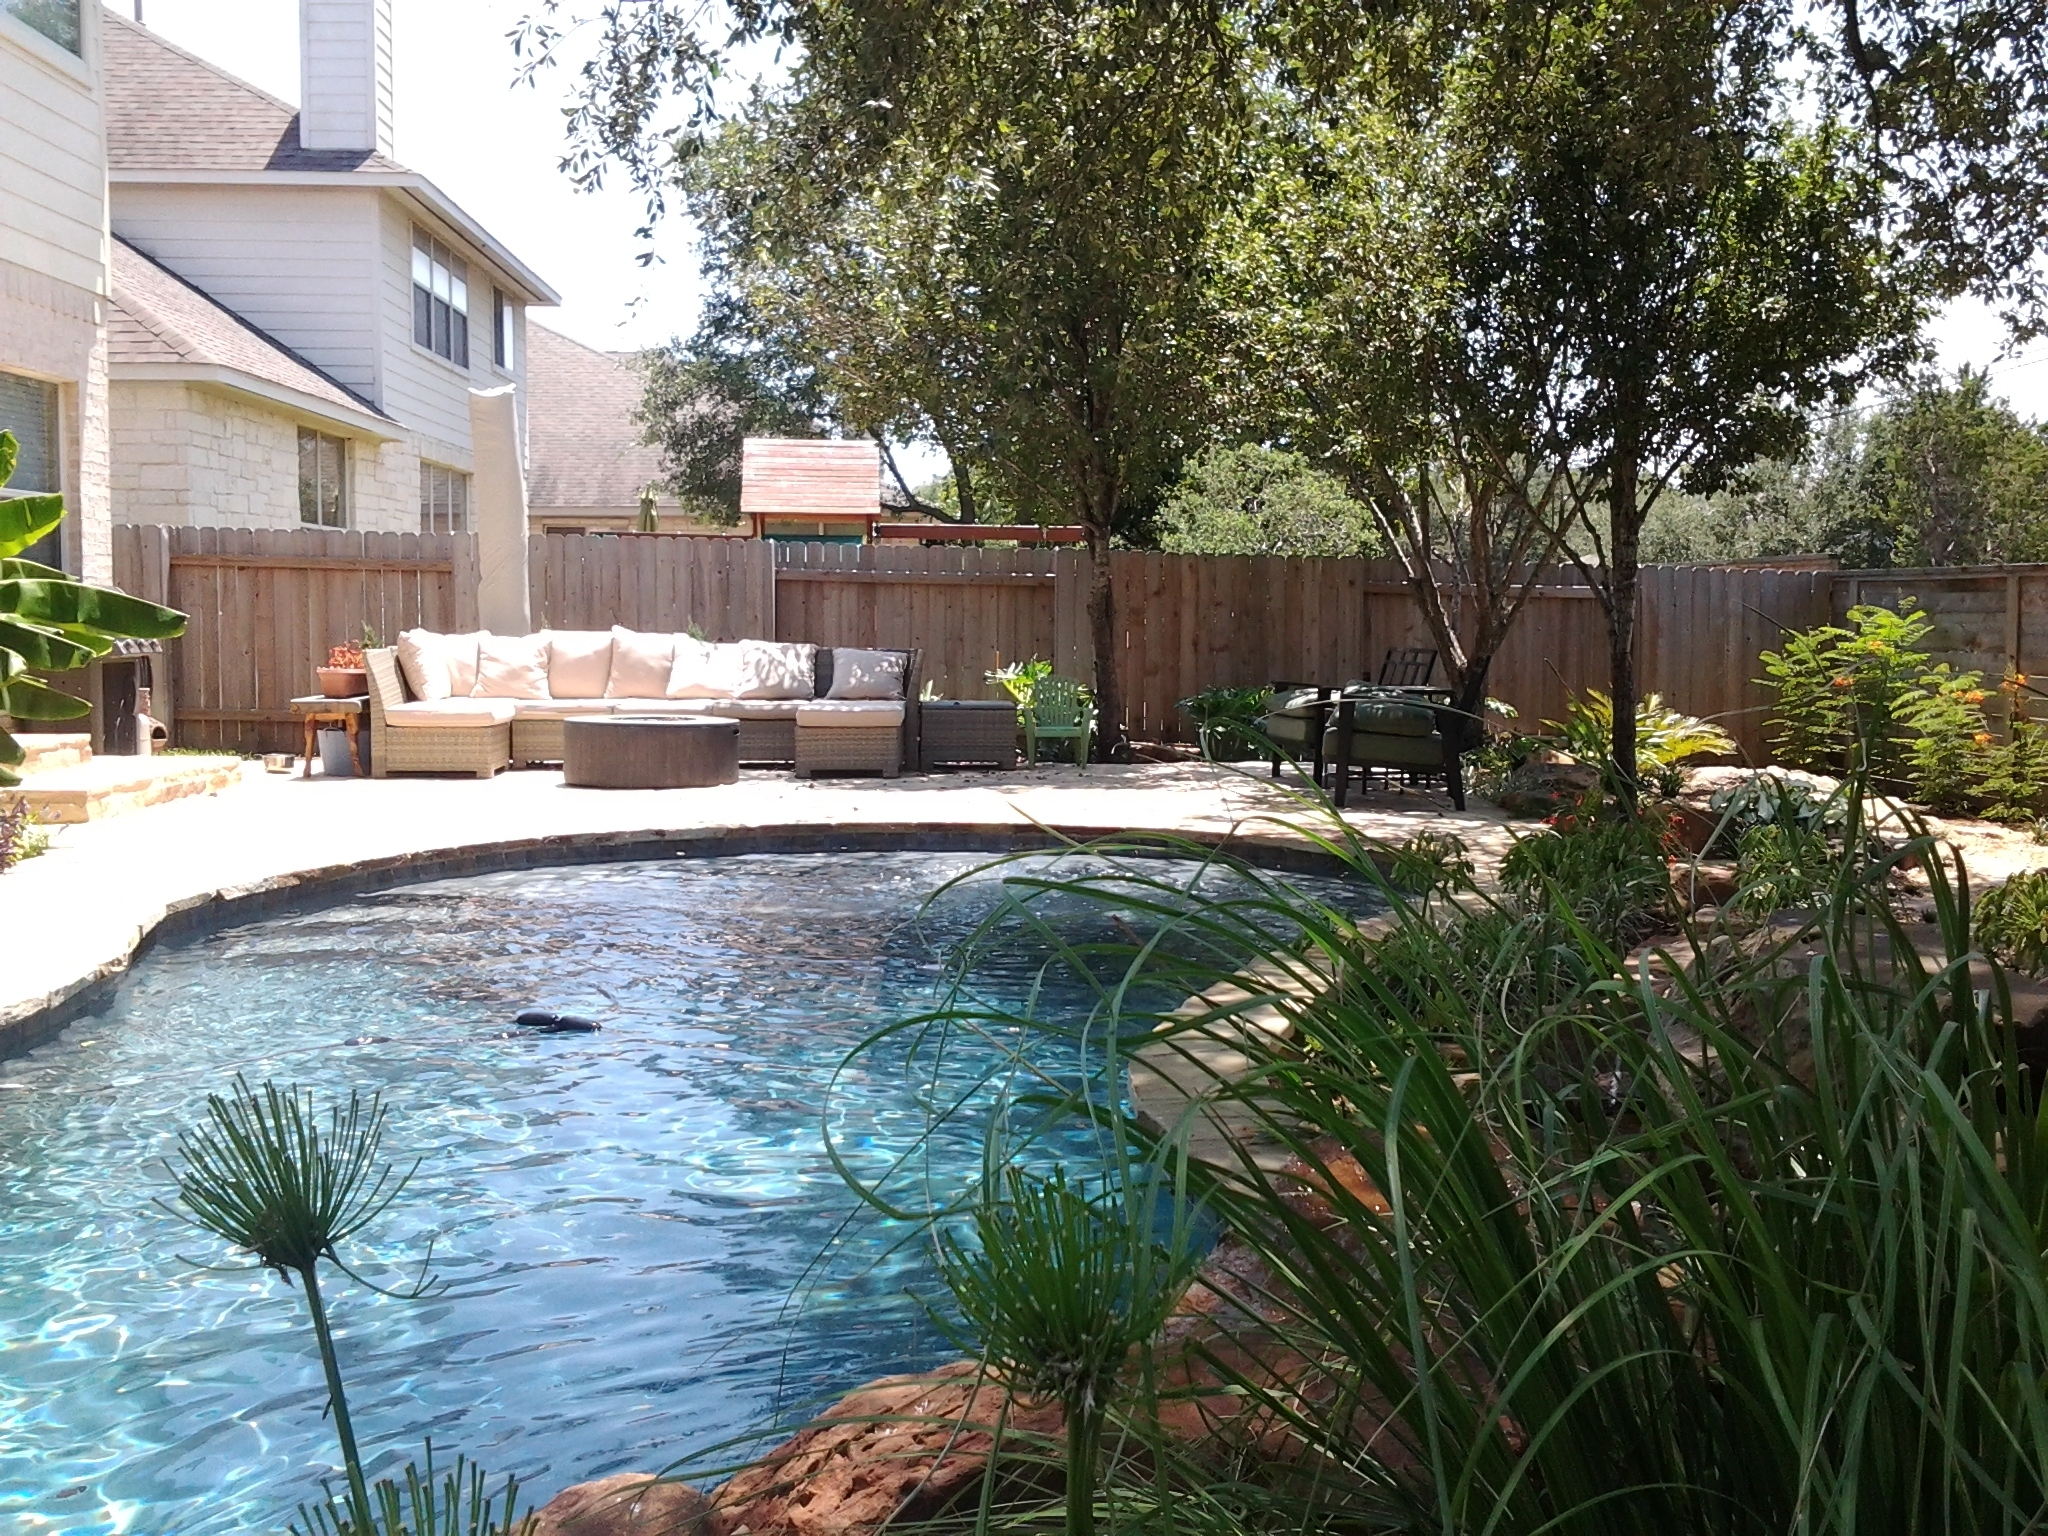 Landscaping Greeneraustin With Regard To Xeriscape Landscaping Knowing About Xeriscape Landscaping